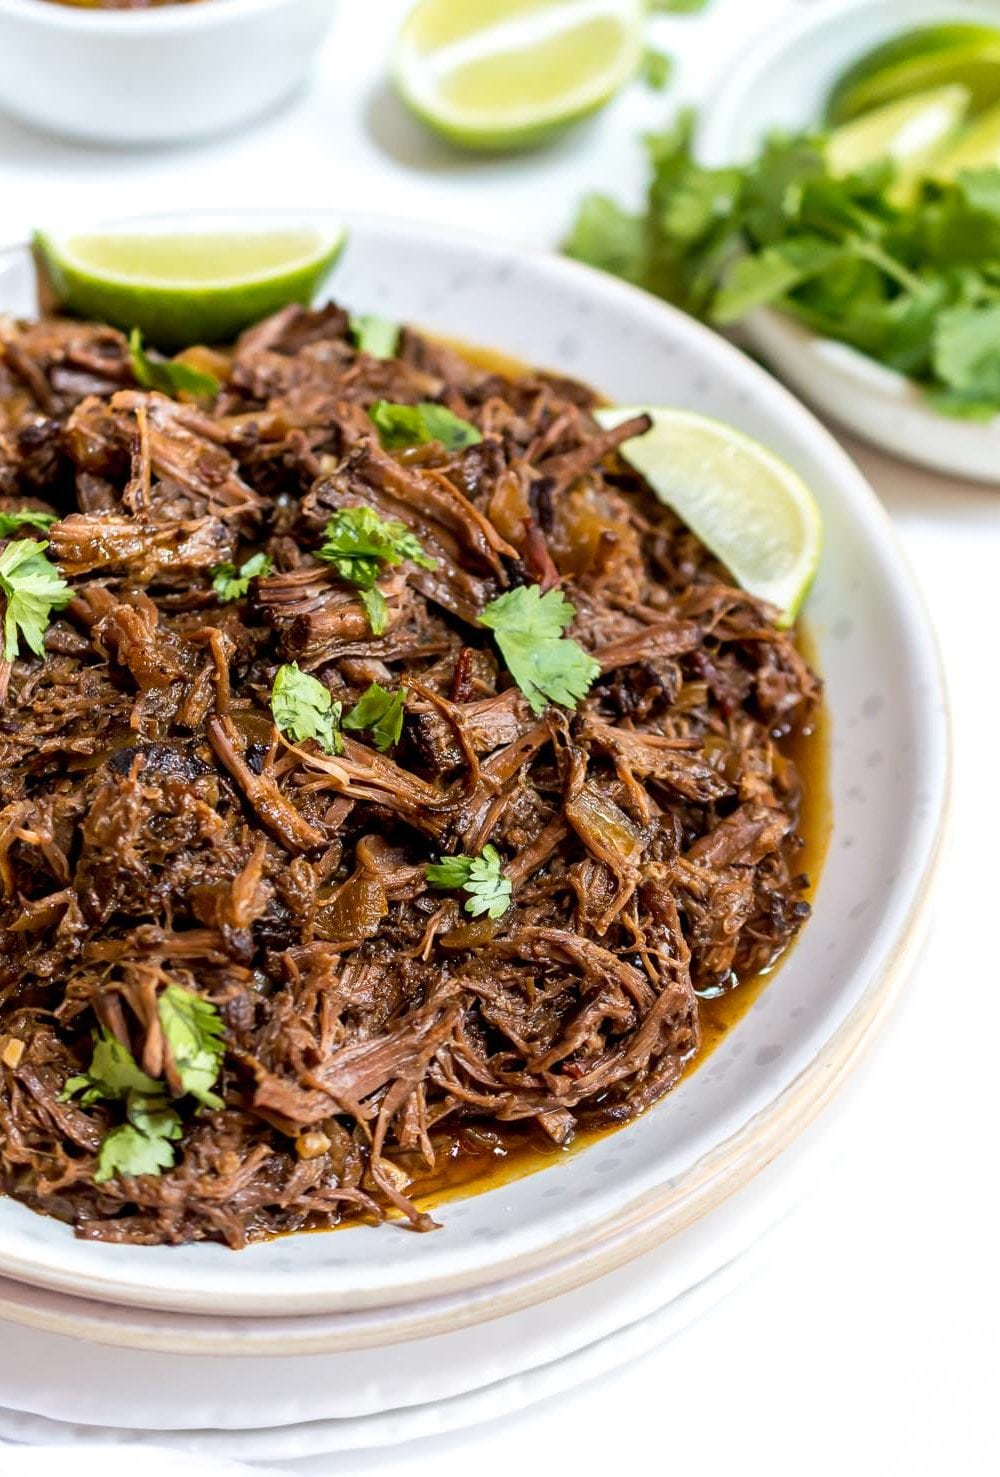 This Cherry Chipotle Slow Cooker Barbacoa Recipe is the perfect meal to serve to family and friends this summer. Keep entertaining easy with this flavorful crockpot recipe. The tart cherry and chipotle combo make this unique dish unforgettable. This recipe is Paleo compliant, dairy free, gluten free and great for meal prep. #slowcookerrecipes #paleorecipes #whole30recipes